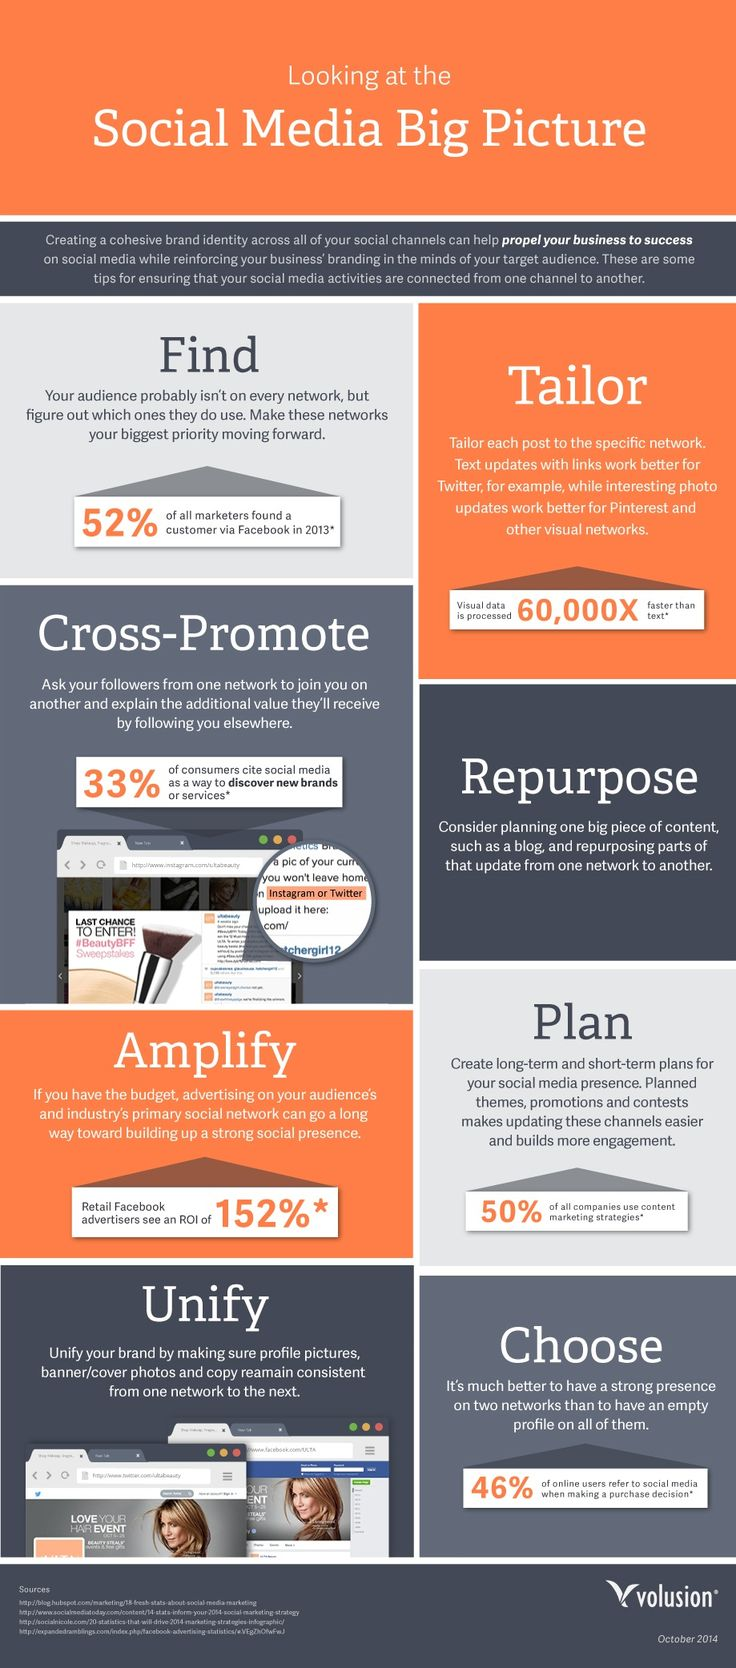 #SocialMedia Marketing: Creating A Unified Brand Experience - #infographic